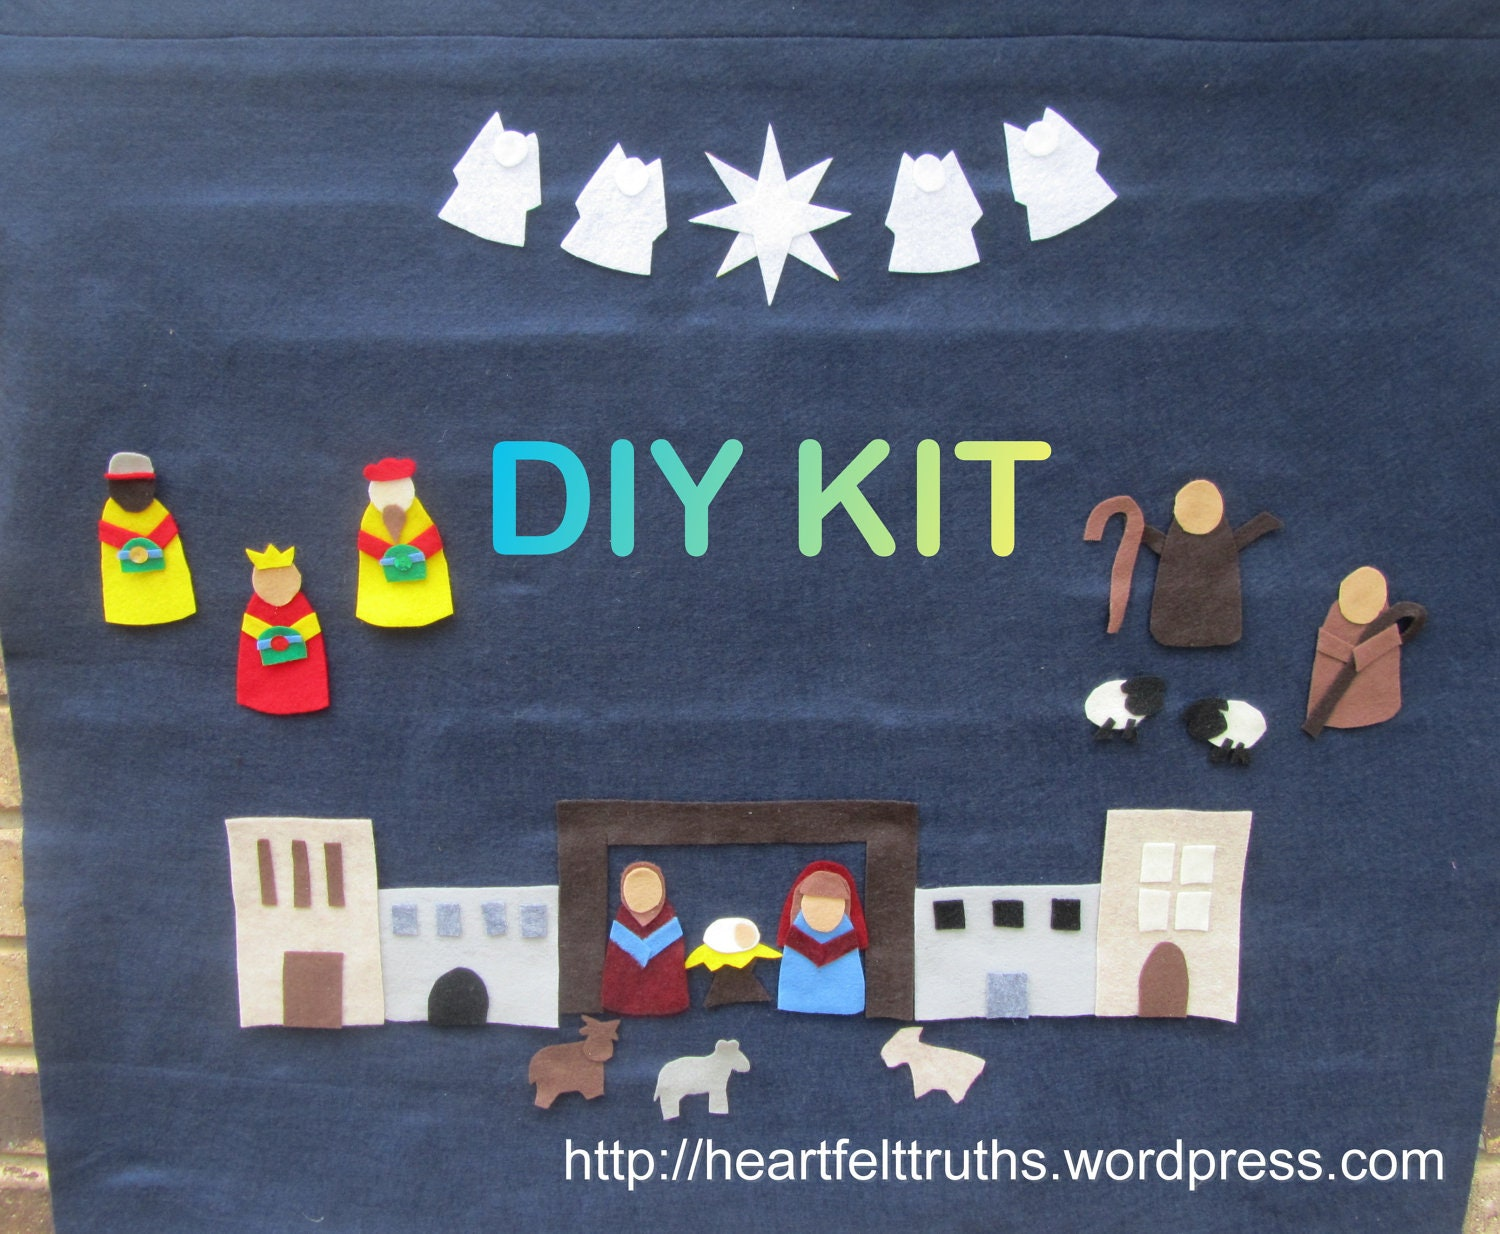 Advent Calendar Diy Kit : Christian advent calendar diy kit for christmas countdown in